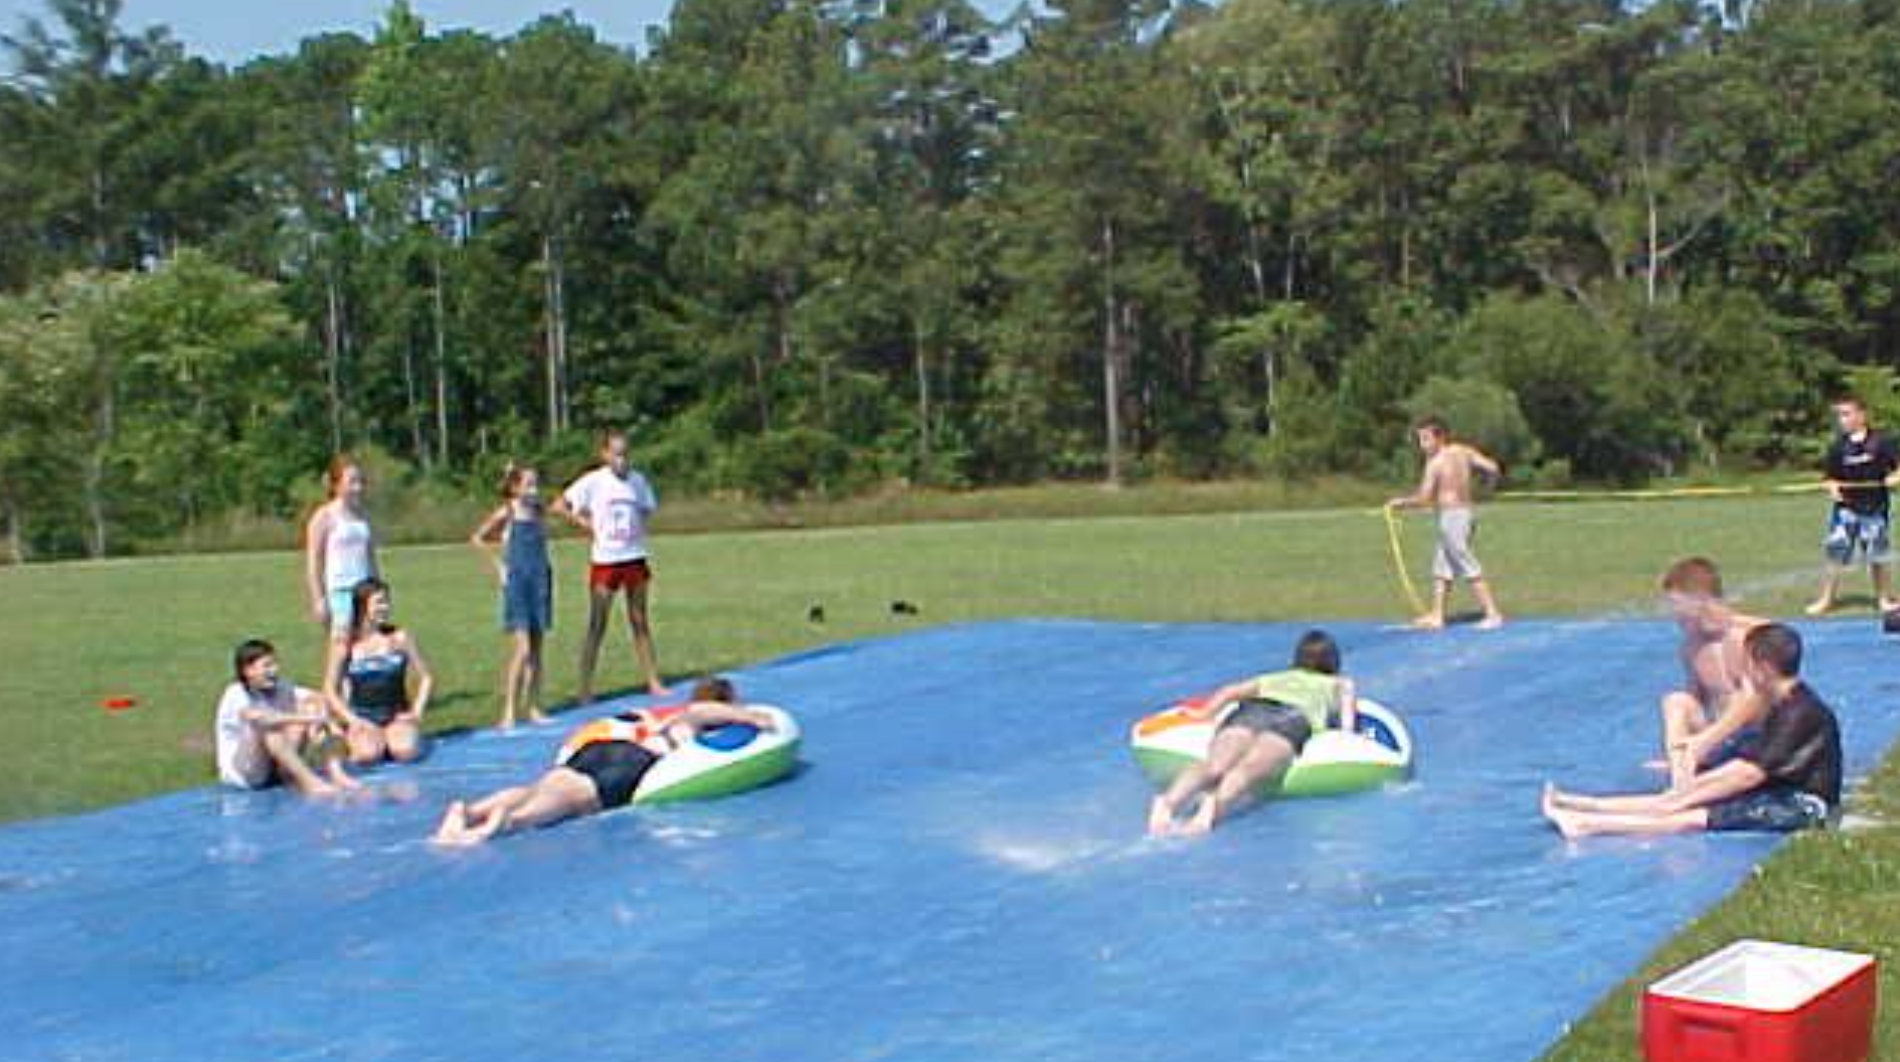 5 Cool Activities To Beat the Heat This Week